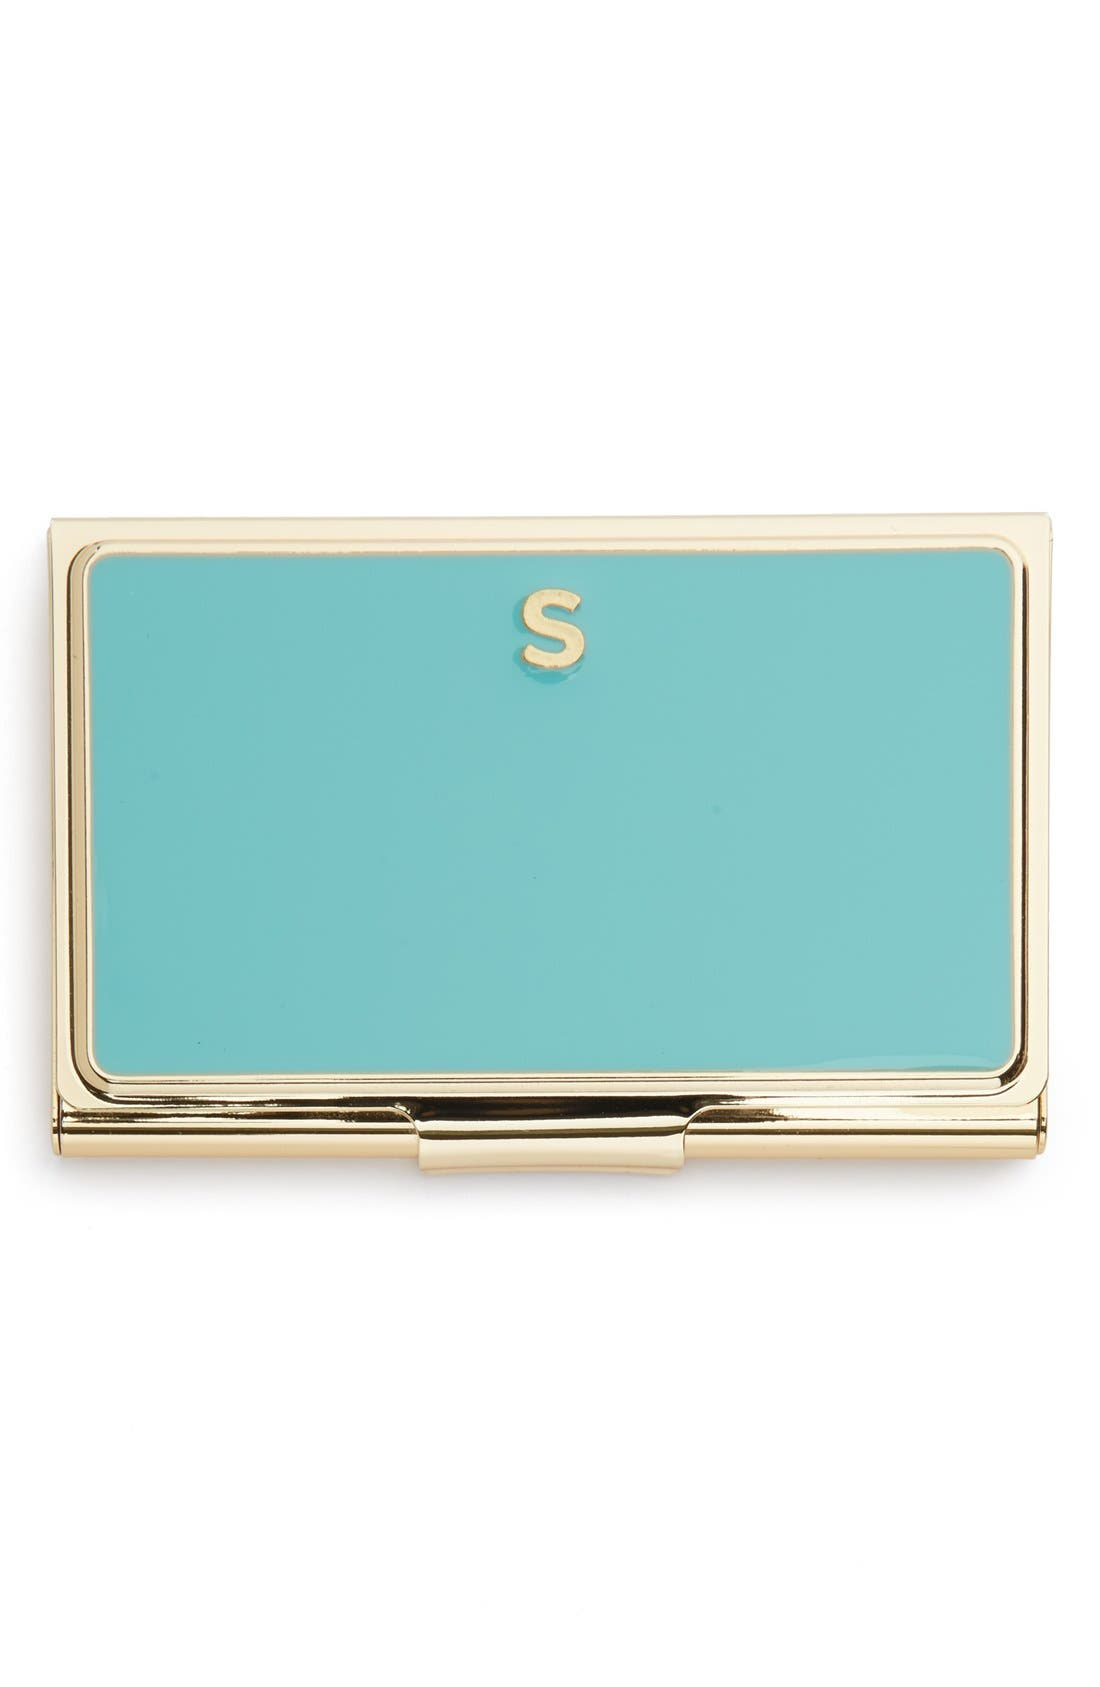 Main Image - kate spade new york 'one in a million' business card holder